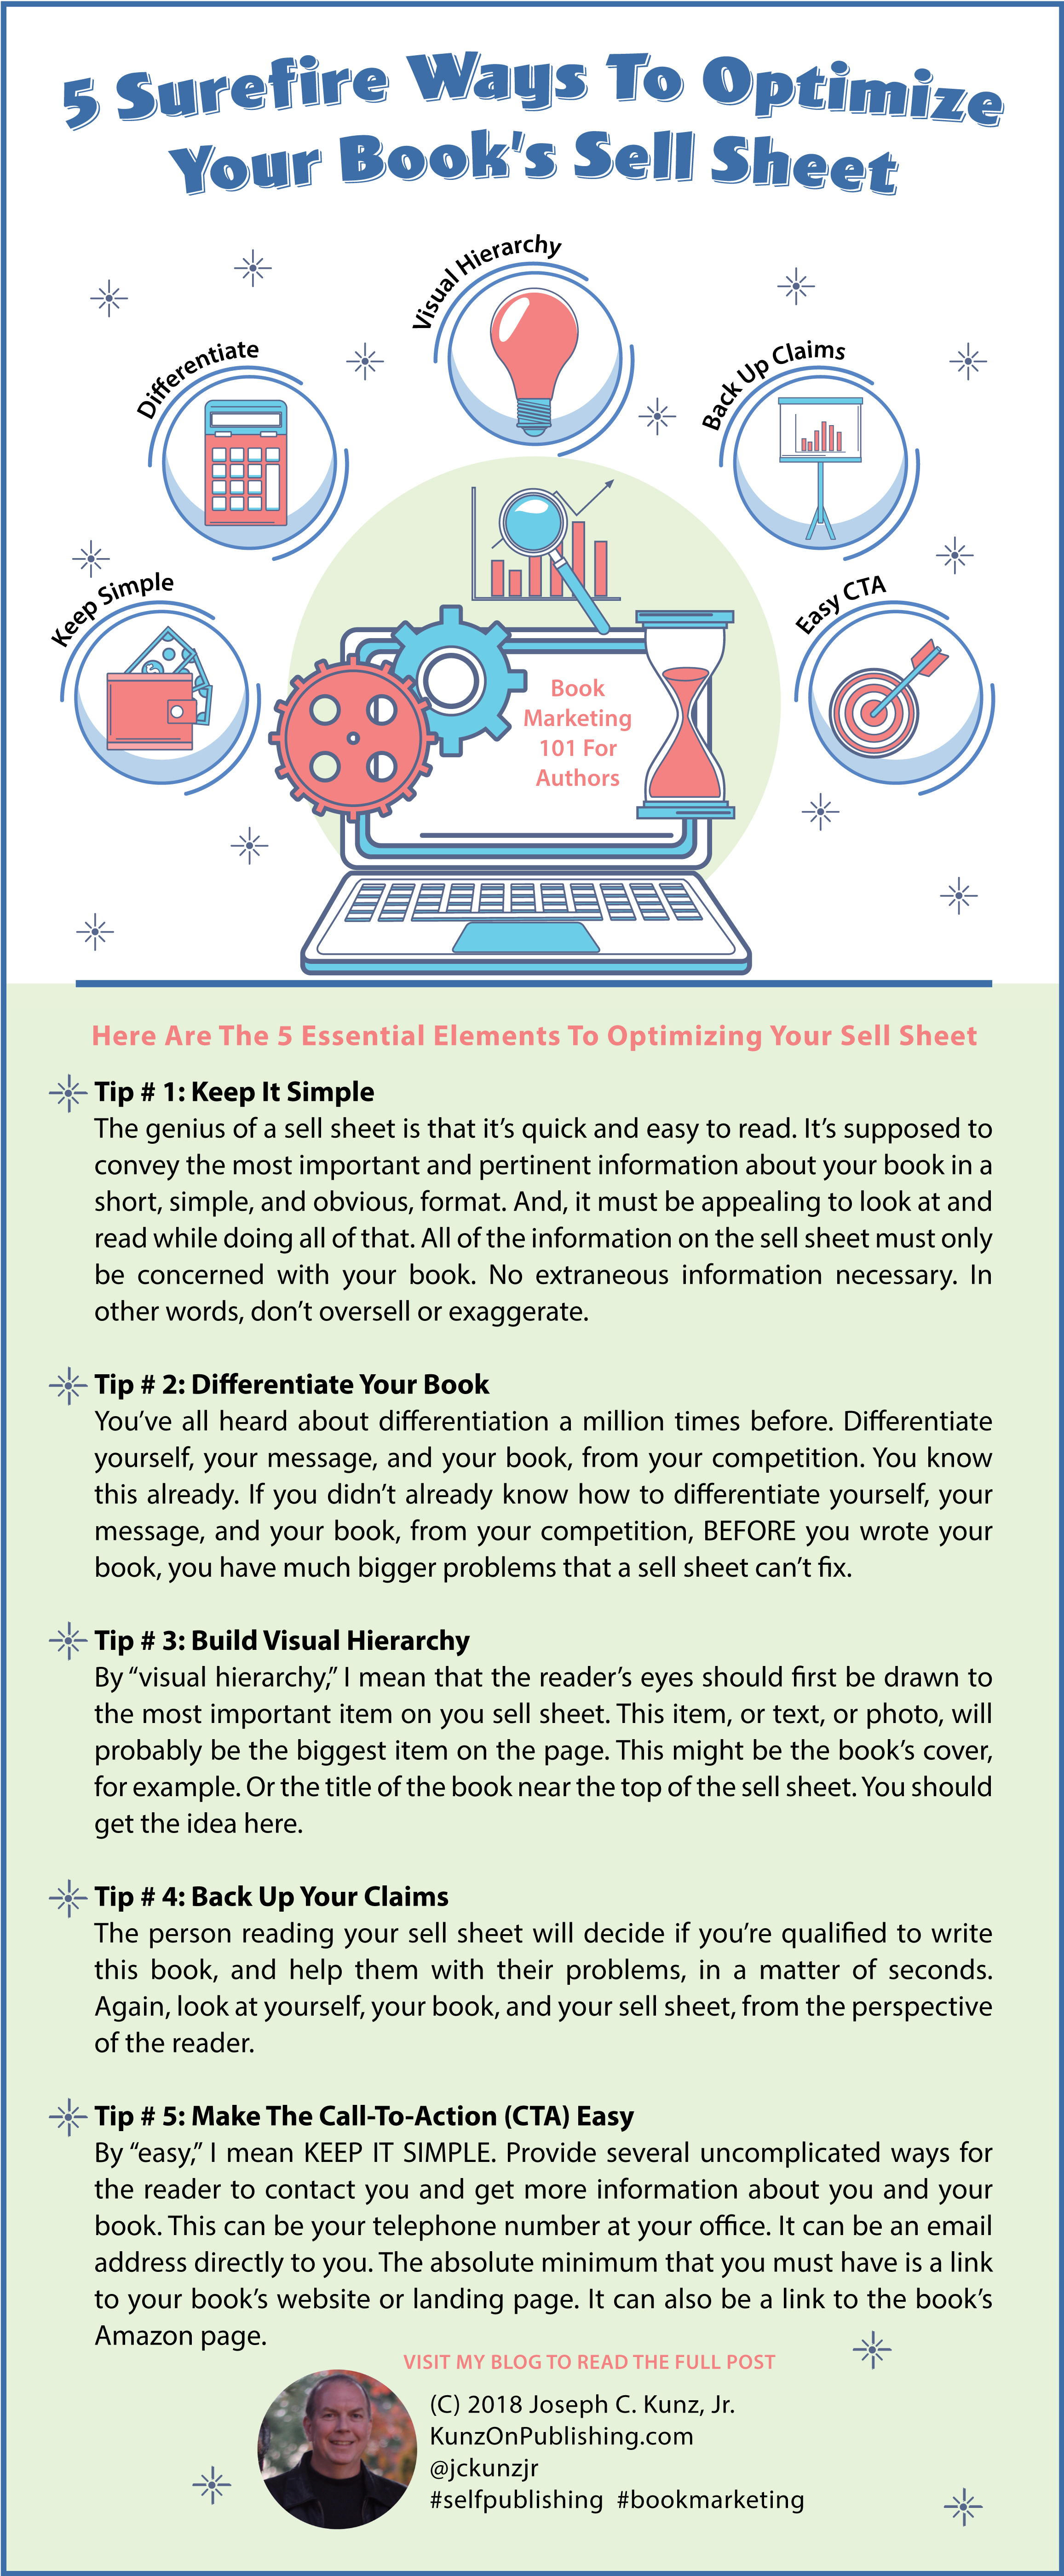 5 Surefire Ways To Optimize Your Book's Sell Sheet (Infographic)